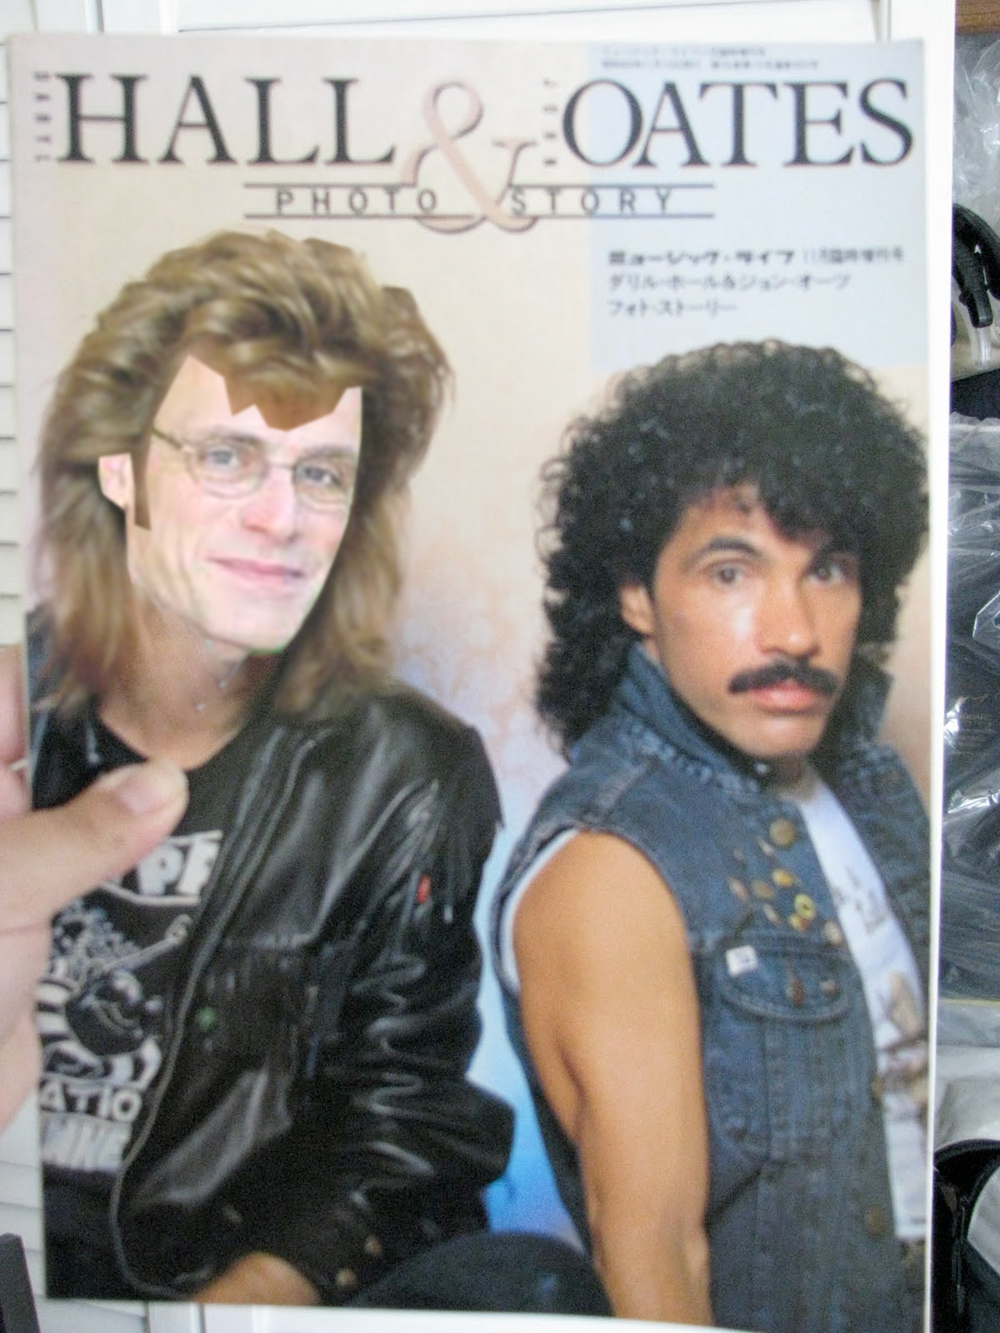 purim cantor hall and oates.jpeg